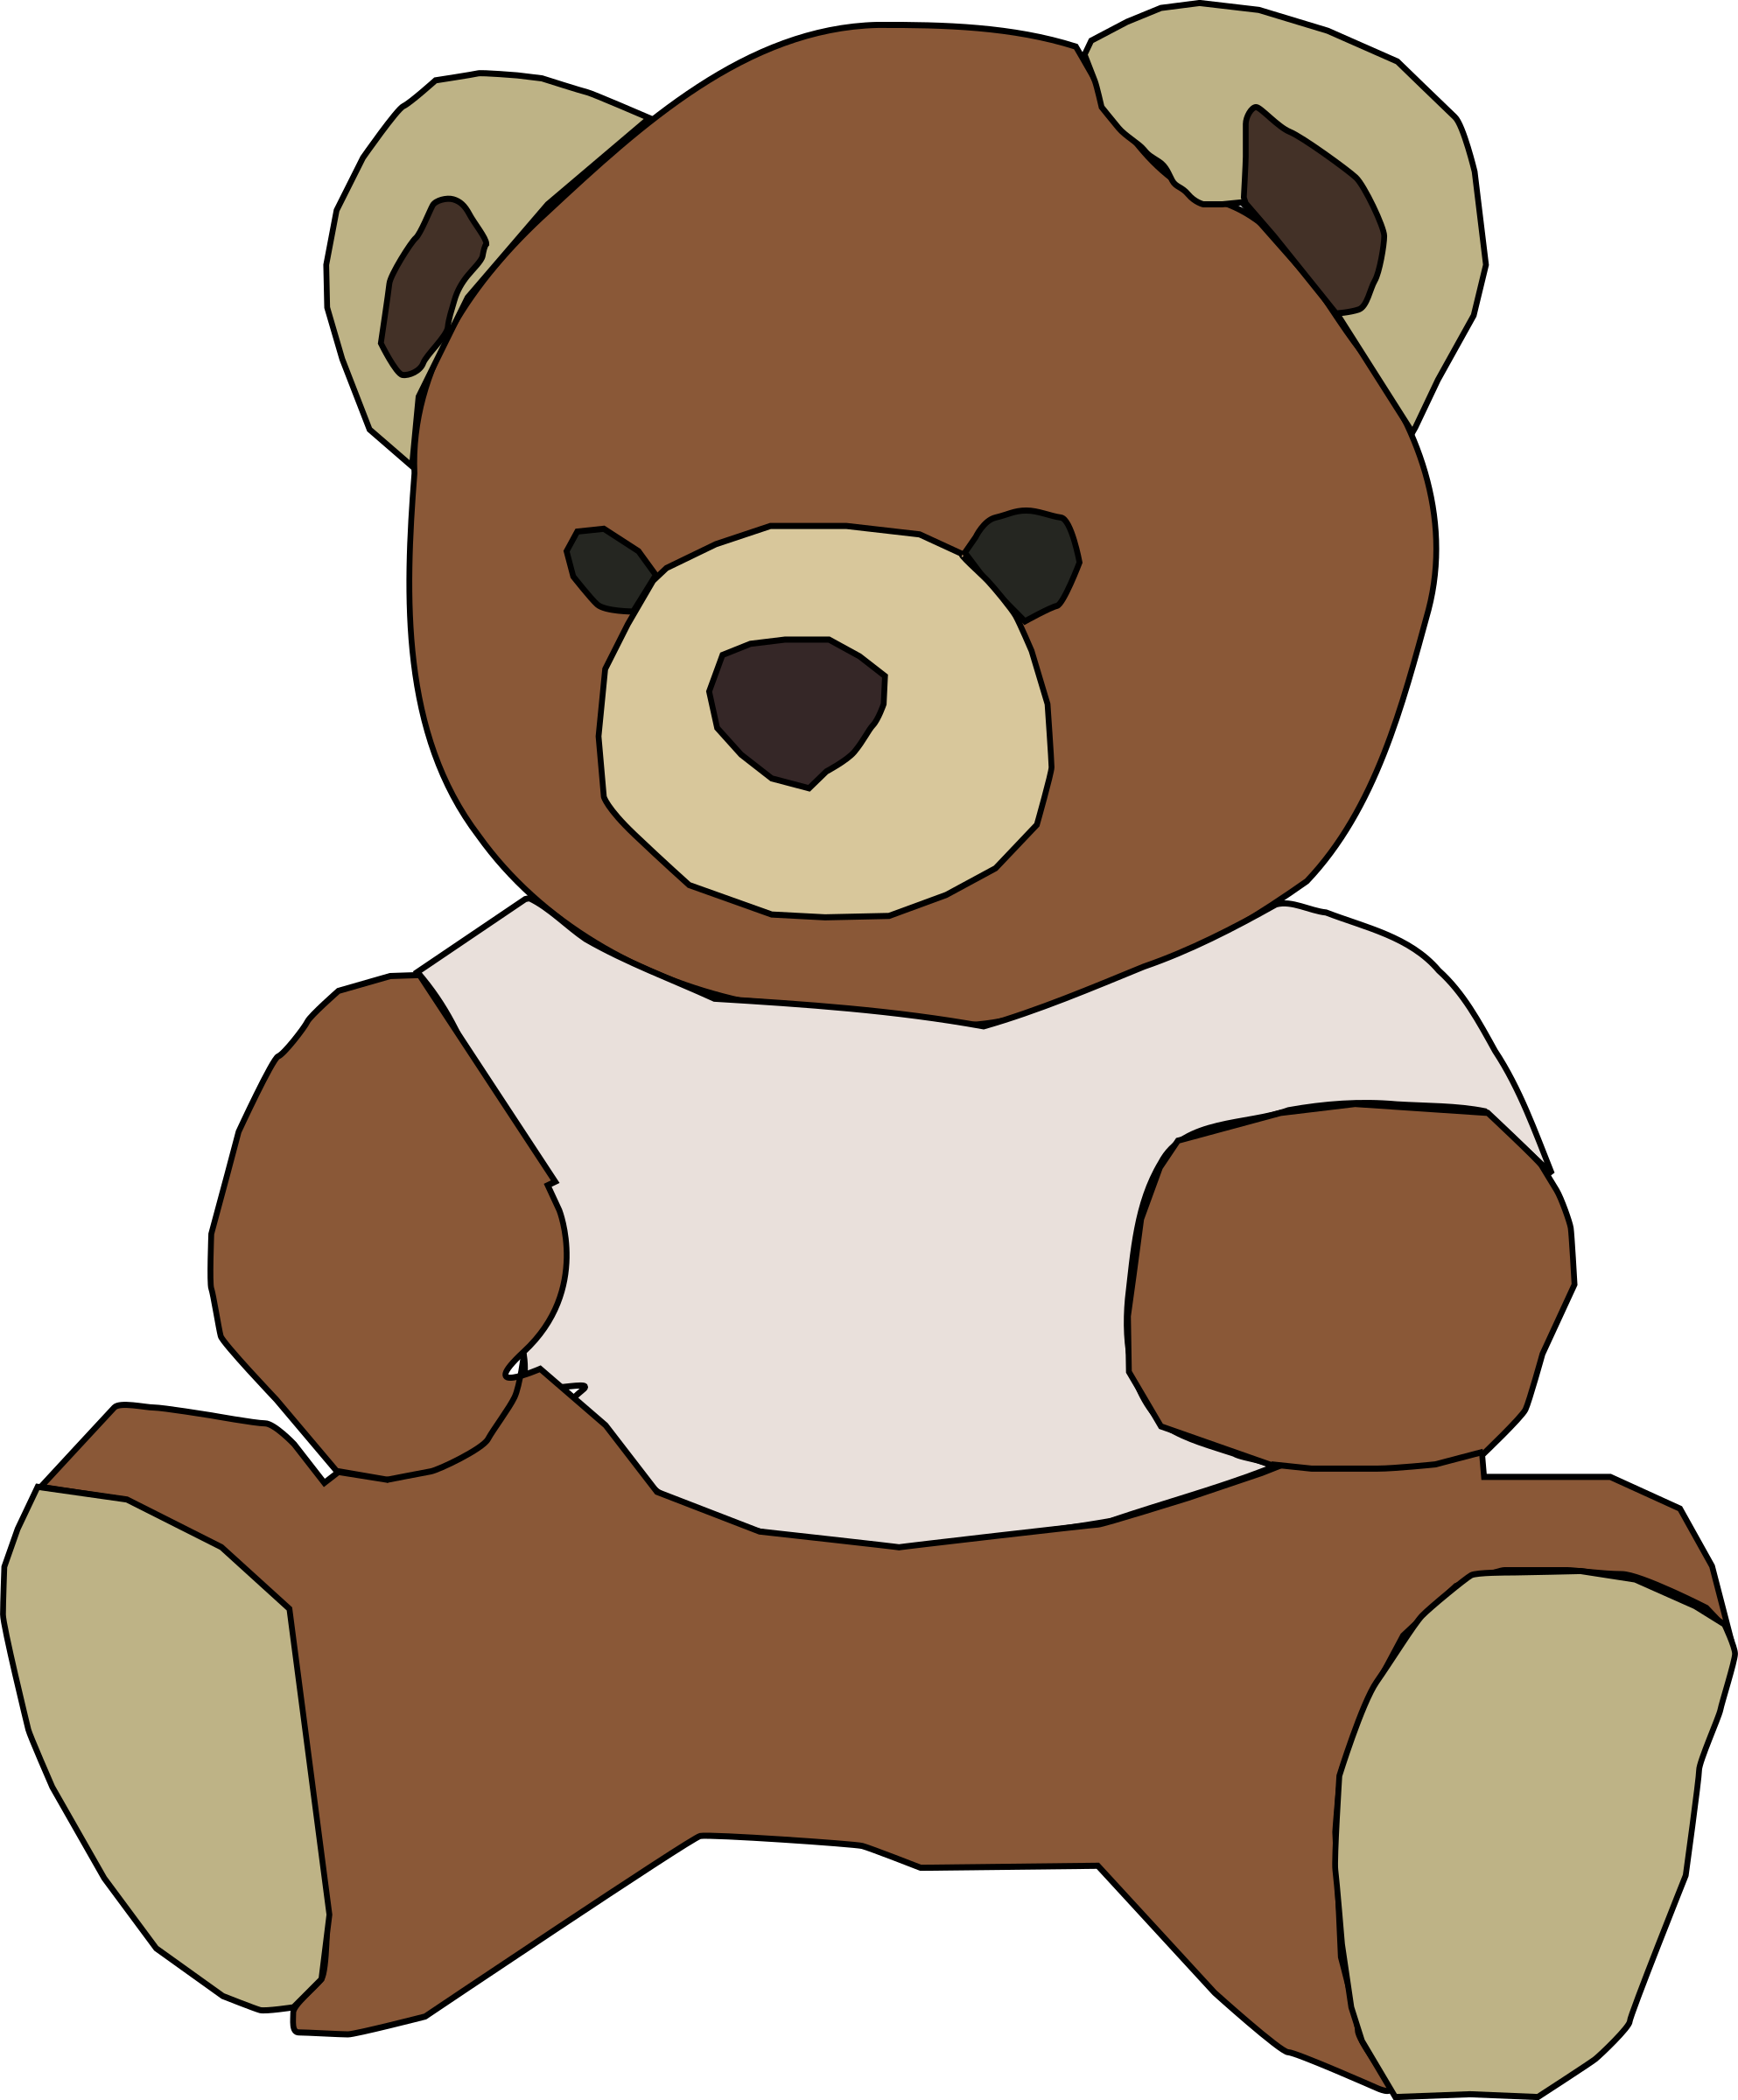 Clipart bear standing, Clipart bear standing Transparent.